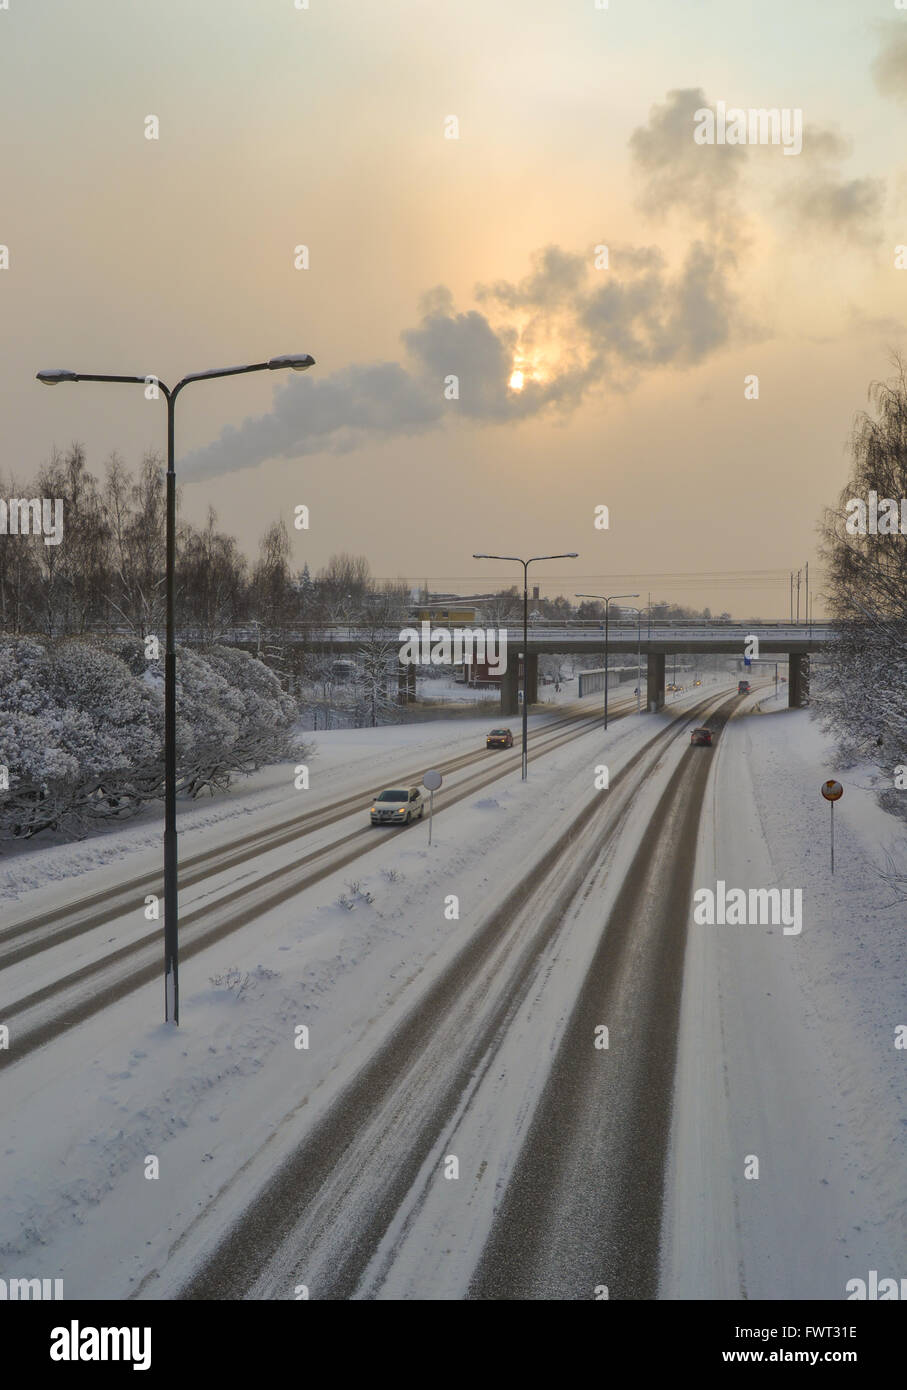 Icy and slippery road in the winter, Finland - Stock Image